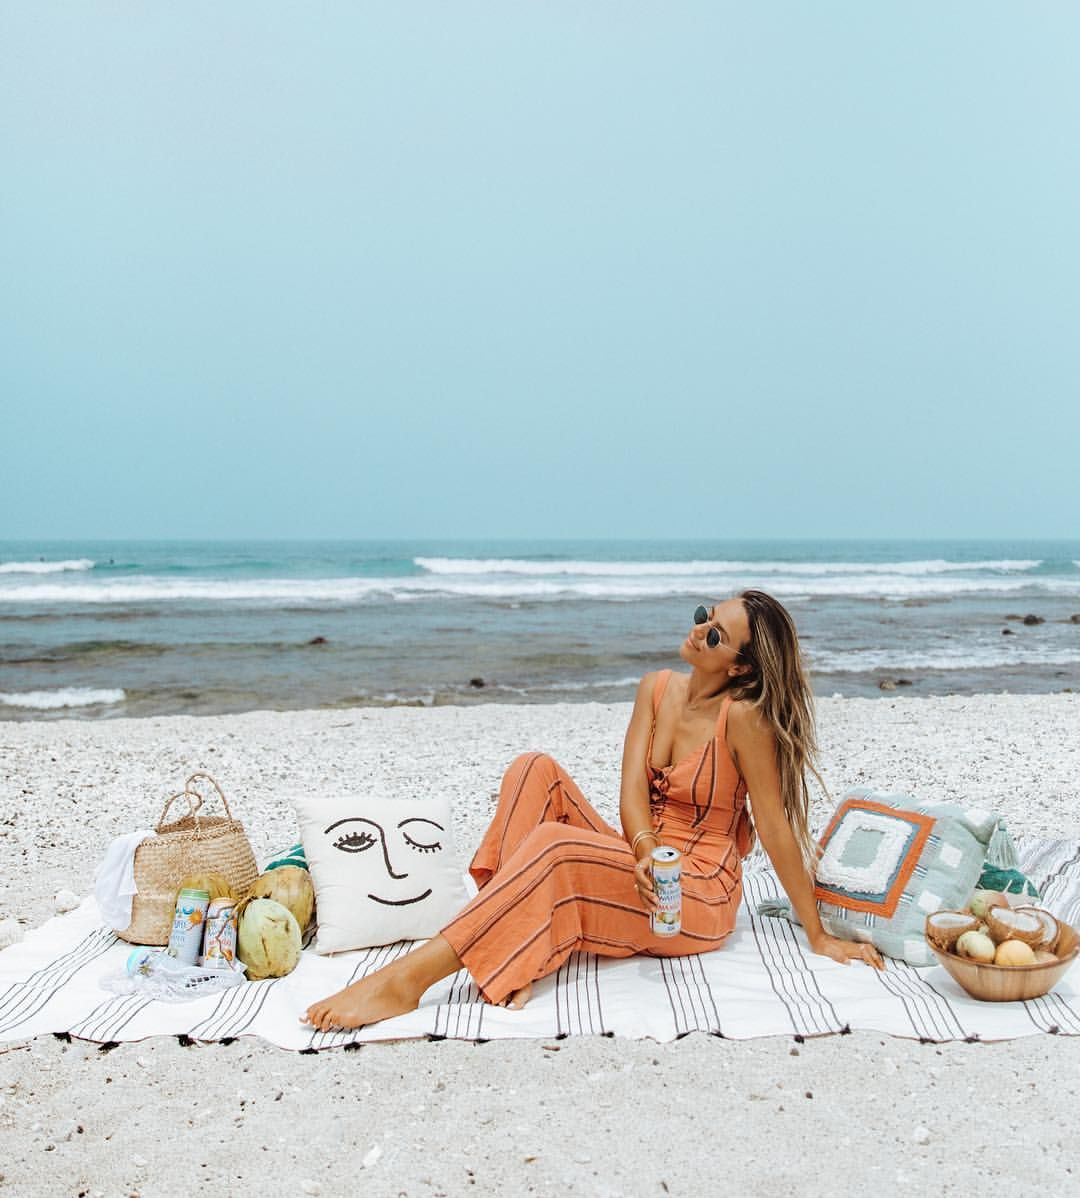 Beach Lounging In Hawaii Summer Vibes And Chic Beach Style Lake Photography Travel Photography Inspiration Instagram